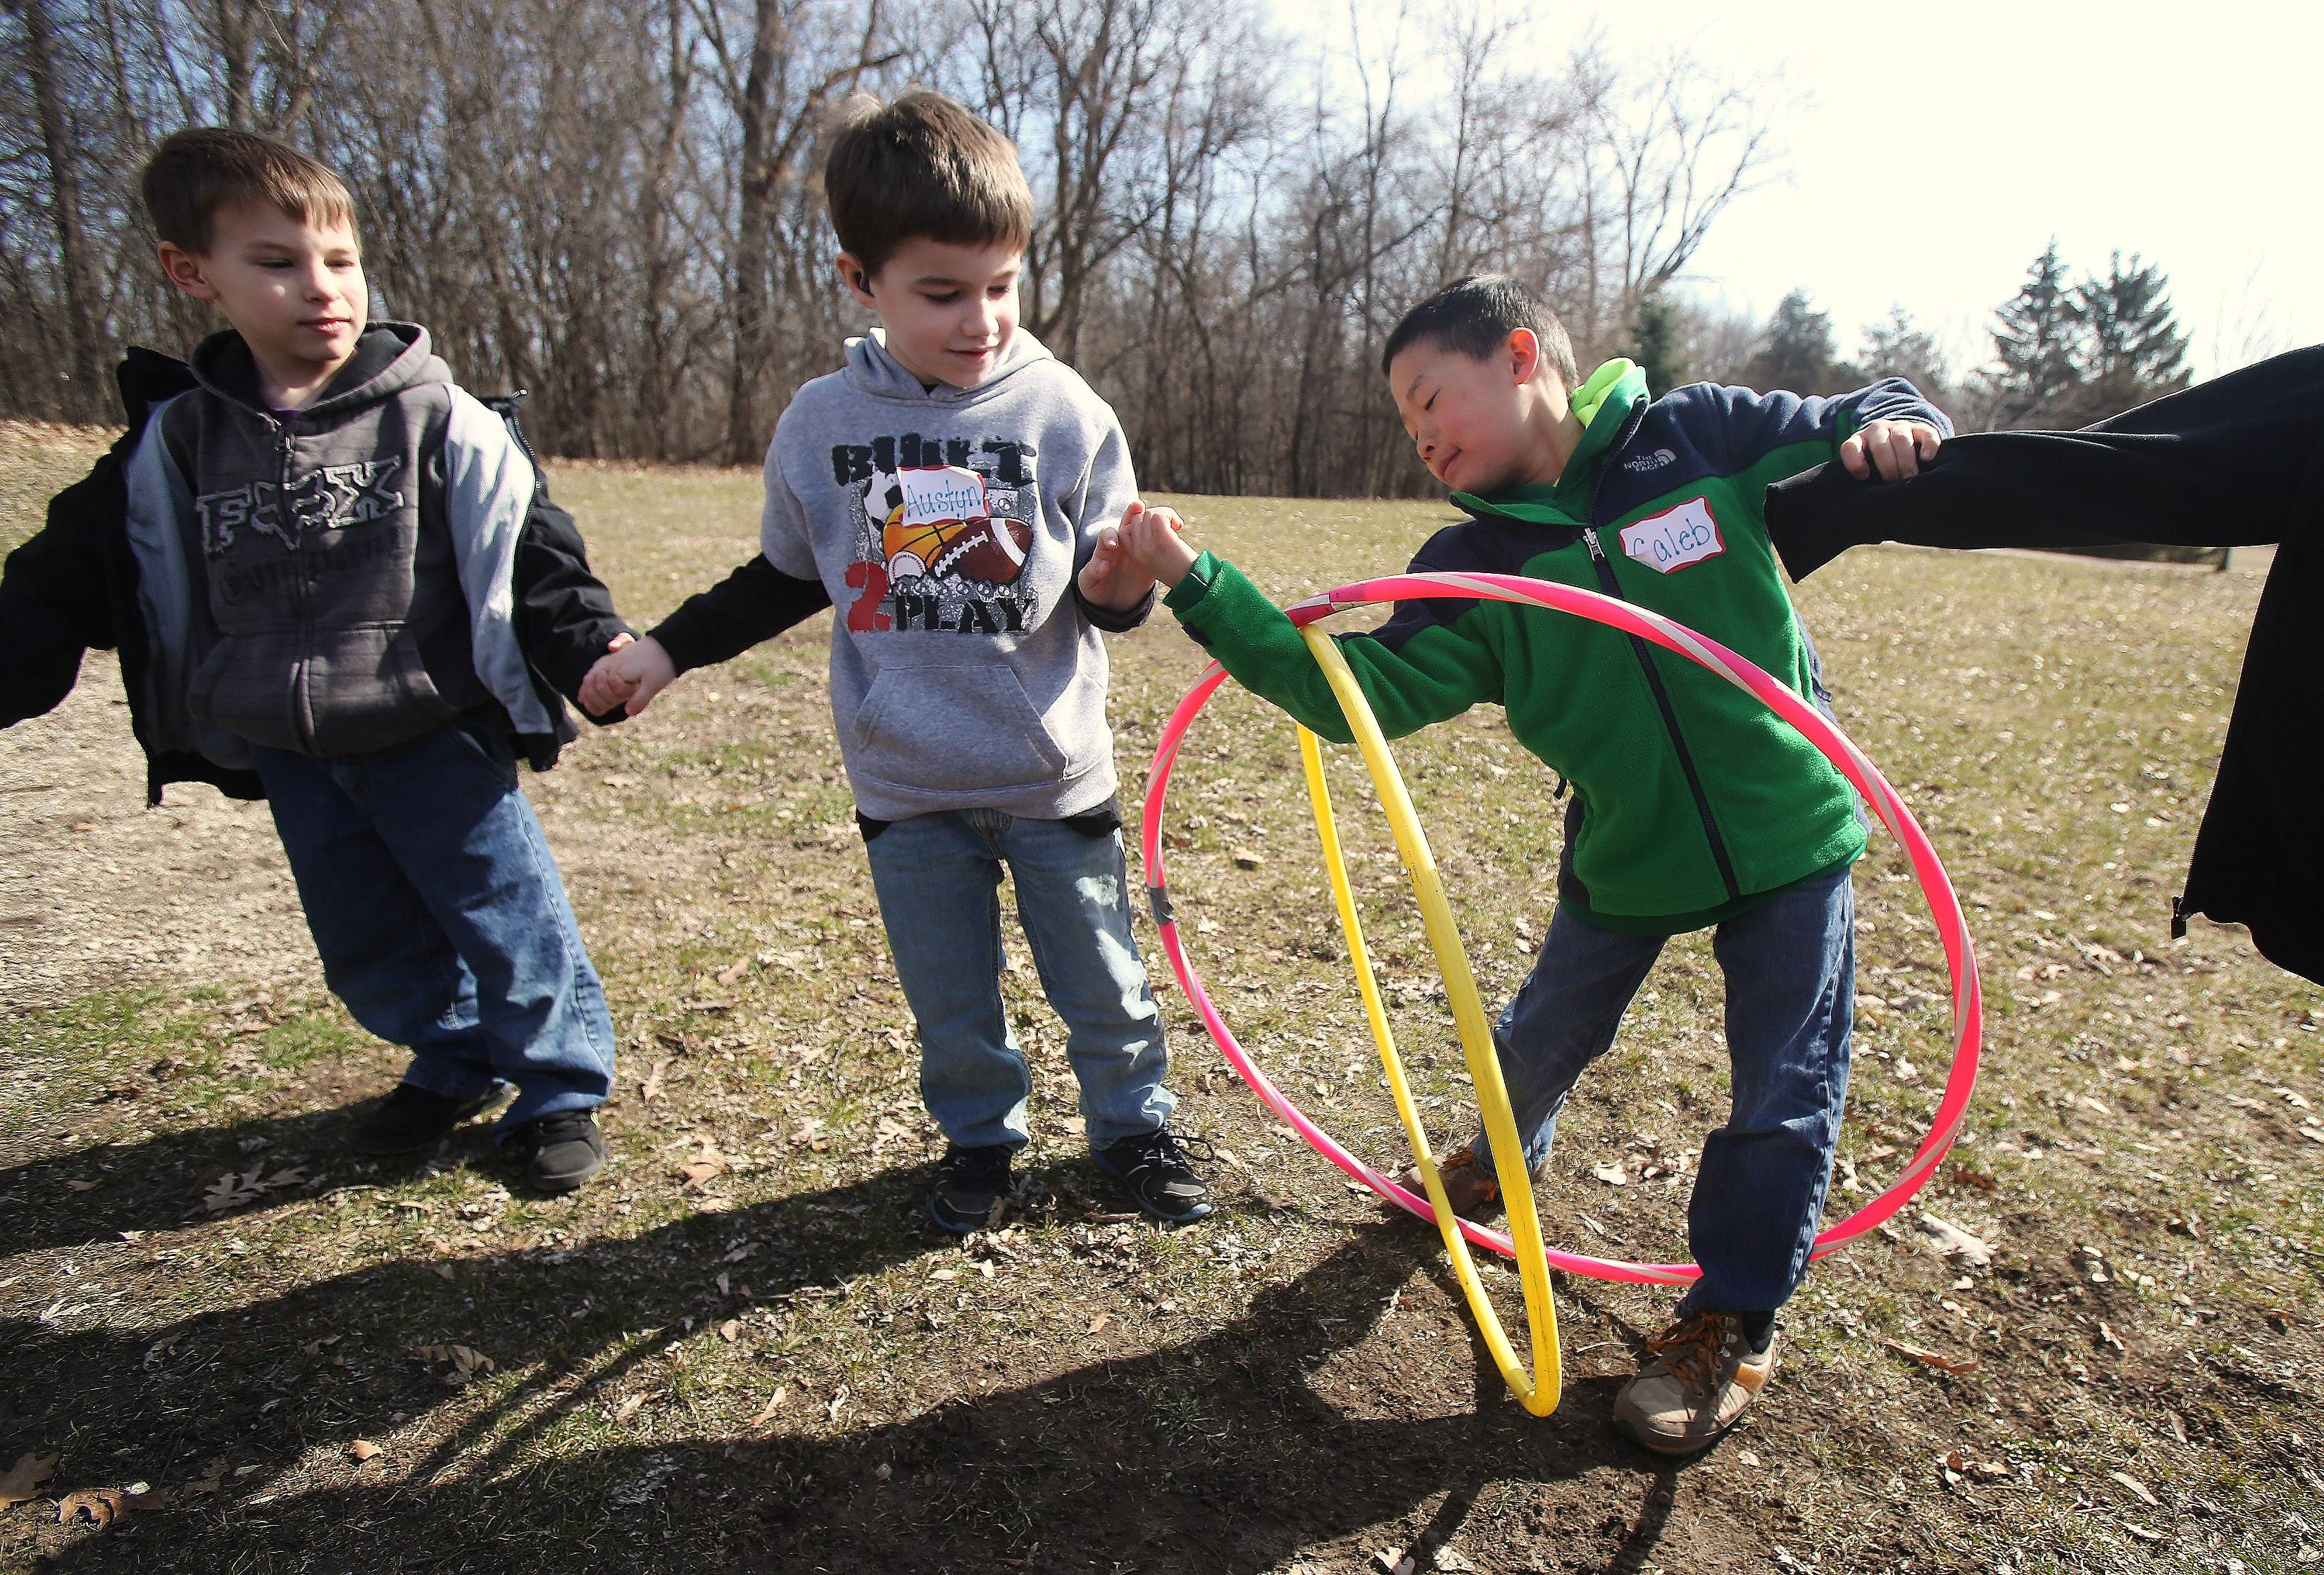 Eight-year-old Caleb Lee, of Vernon Hills, right, tries to go through two hoops as he plays a game with Austyn Hunt, 7, of Ingleside, and Alex Maritz, 5, of Antioch, during team building day for hearing impaired children Sunday at Camp Duncan in Ingleside. Forty-five kids played games and intermingled during the event sponsored by the SEDOL Foundation.